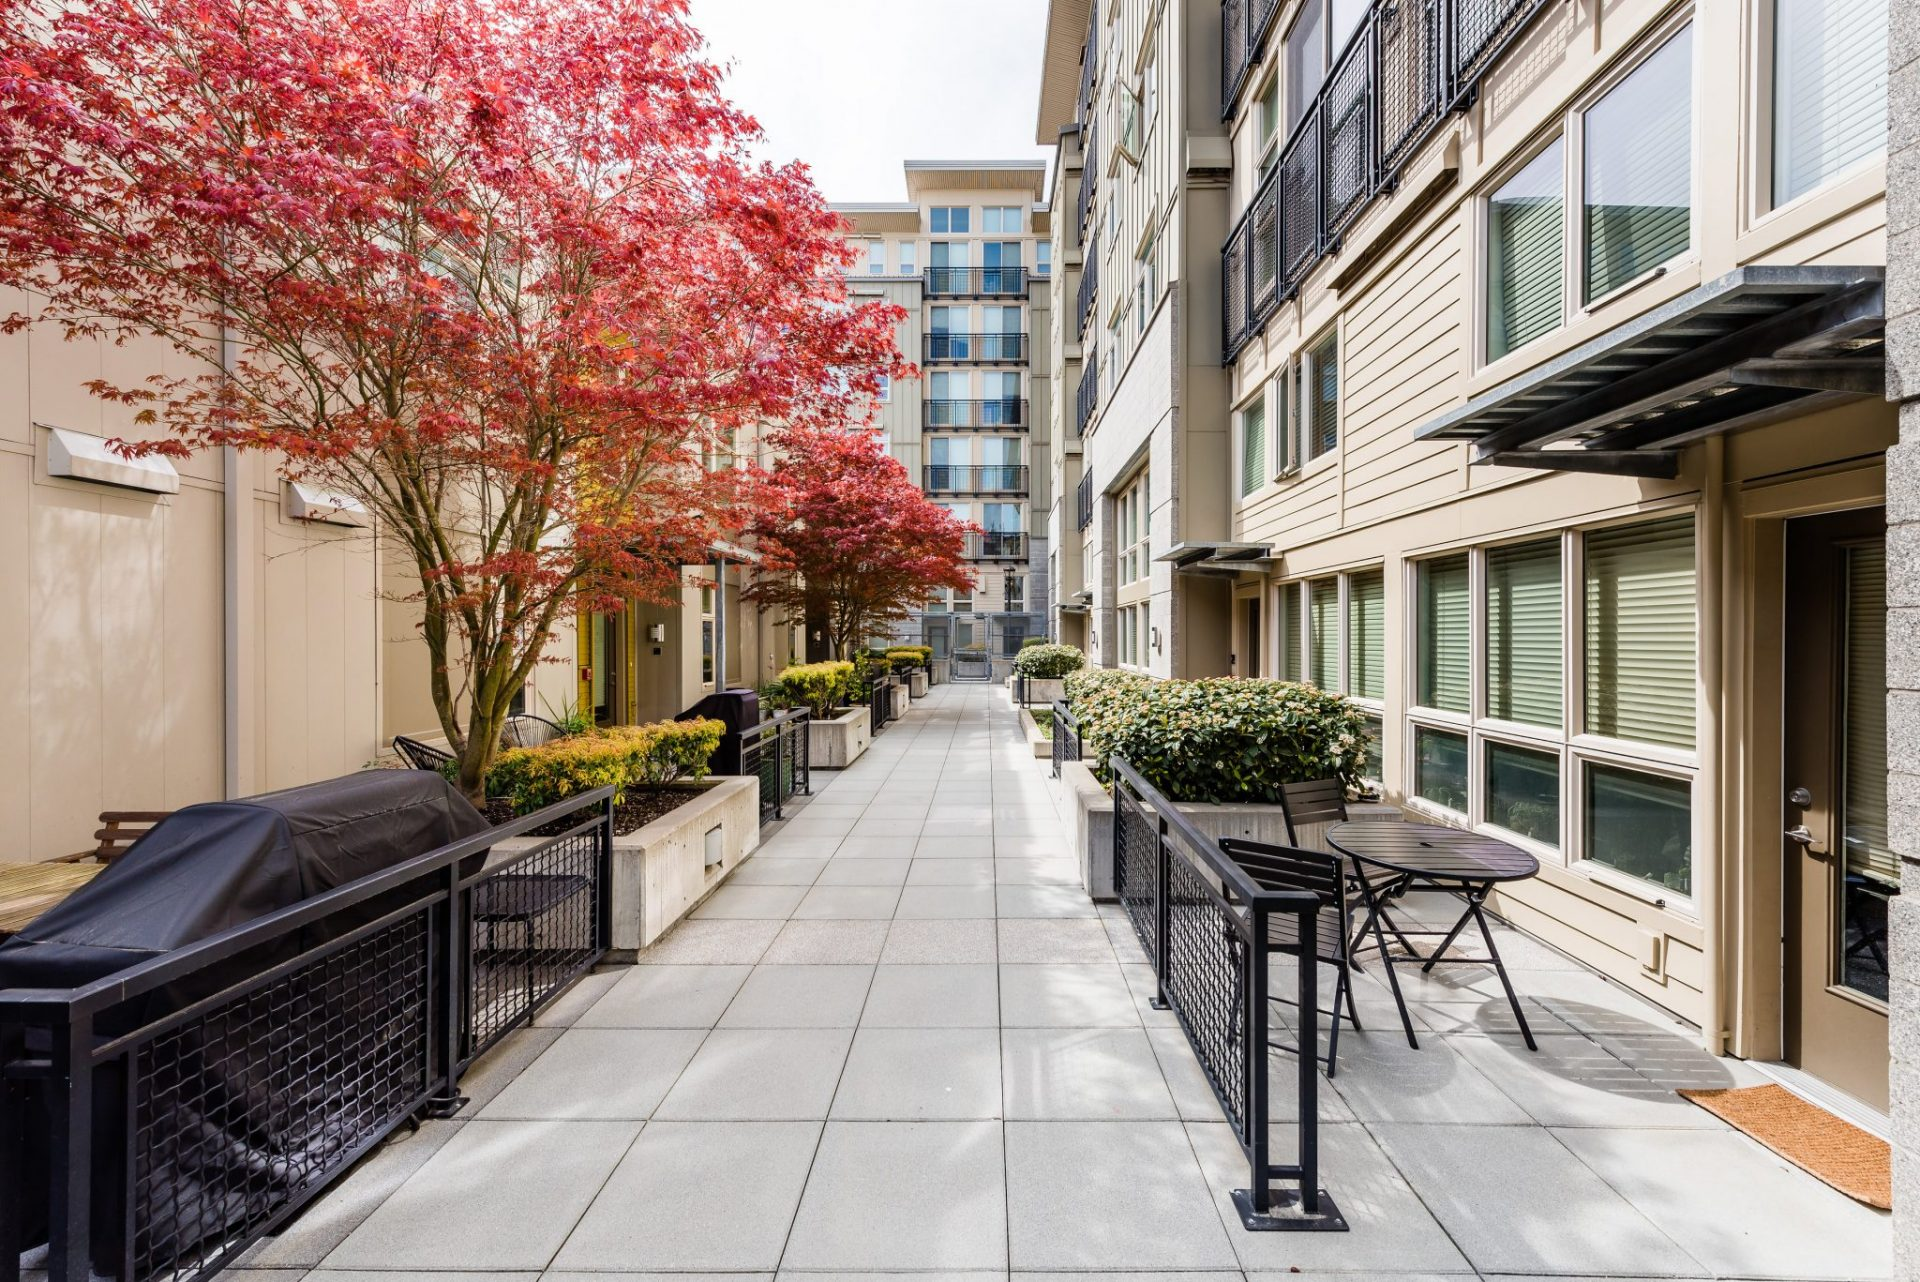 Private Apartment Patios At Thornton Place Apartments In Seattle, WA